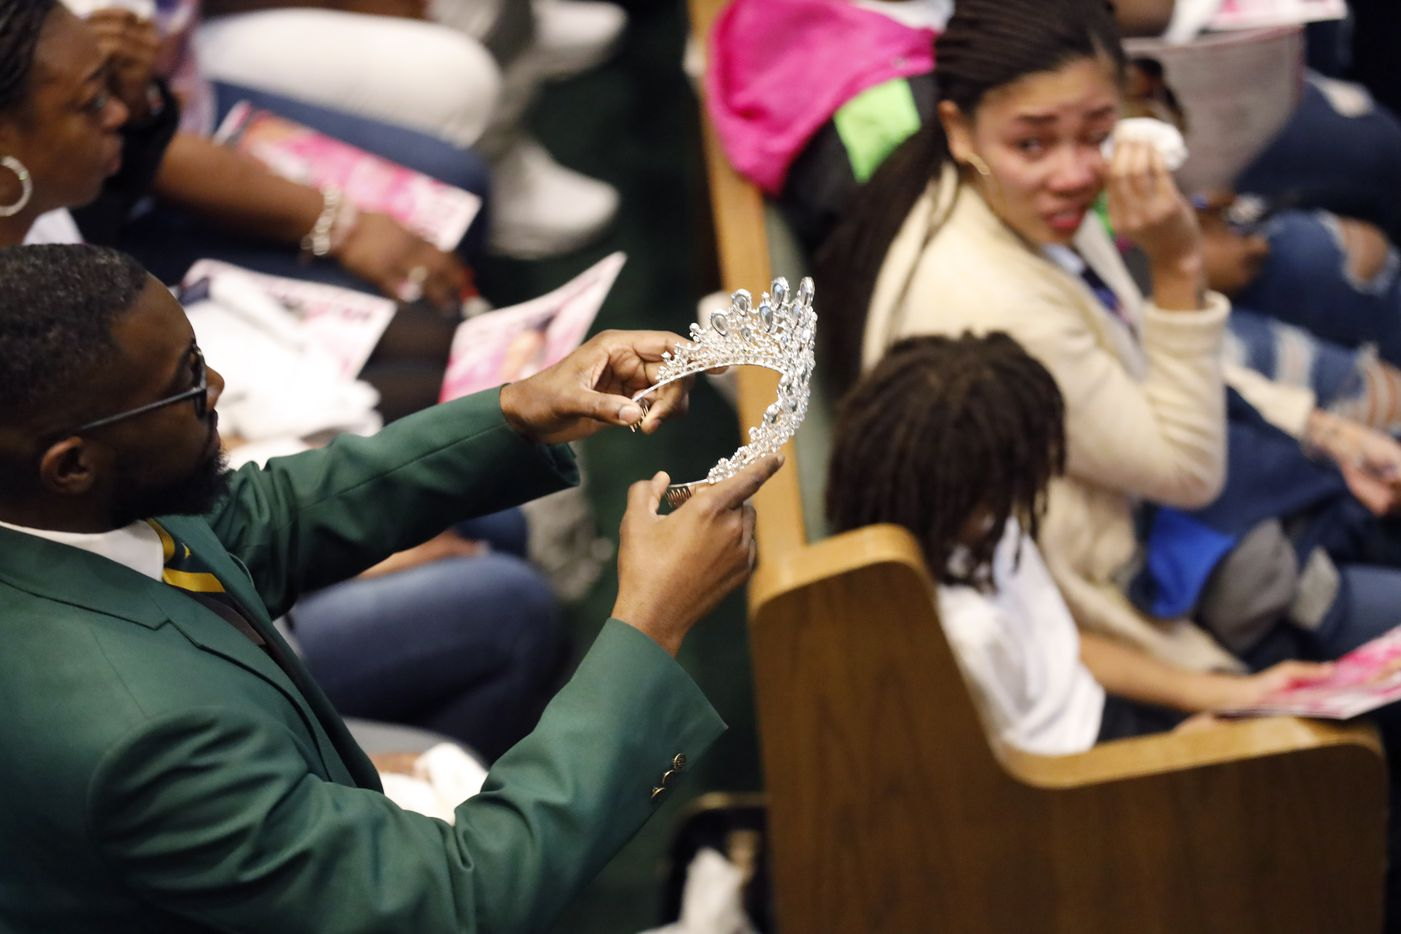 Funeral attendant Kevin Brooks of Evergreen Memorial Funeral Home marches down the aisle with a tiara for LaTiffiney Rodgers, 26, during a celebration of life and funeral service at the CrossRoads Covenant Church in DeSoto, Texas, Saturday, February 22, 2020.